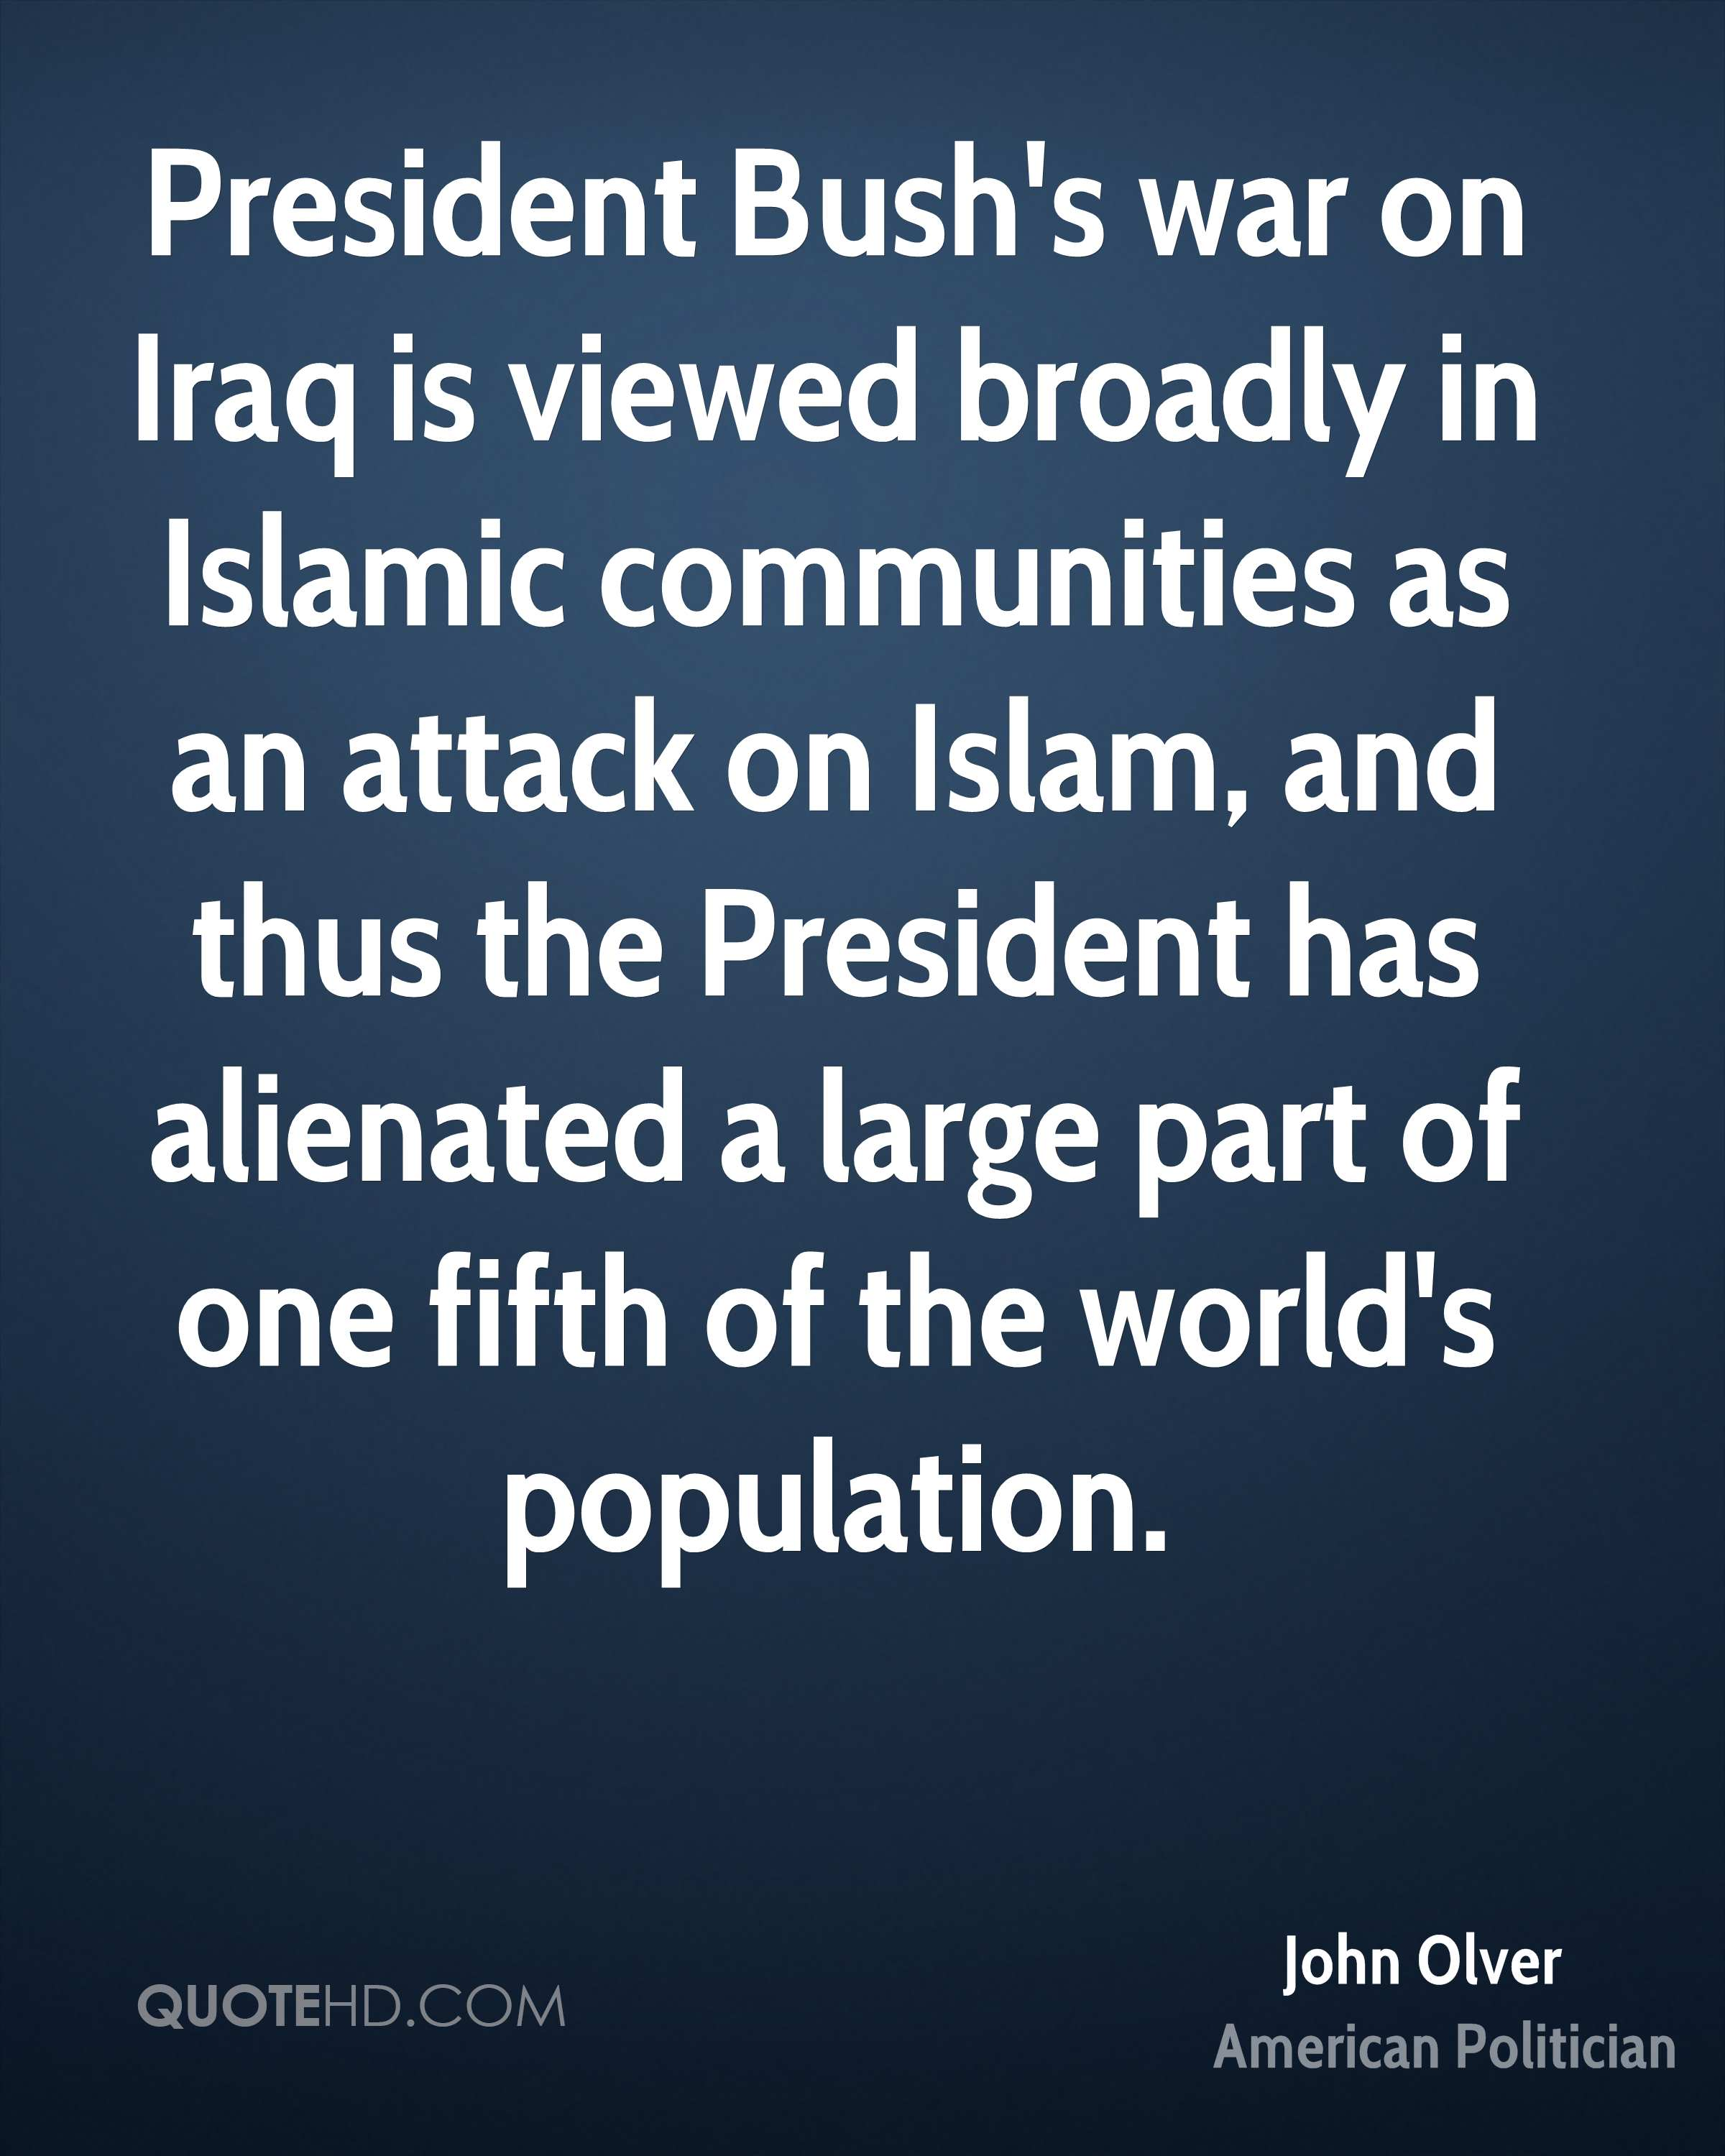 President Bush's war on Iraq is viewed broadly in Islamic communities as an attack on Islam, and thus the President has alienated a large part of one fifth of the world's population.